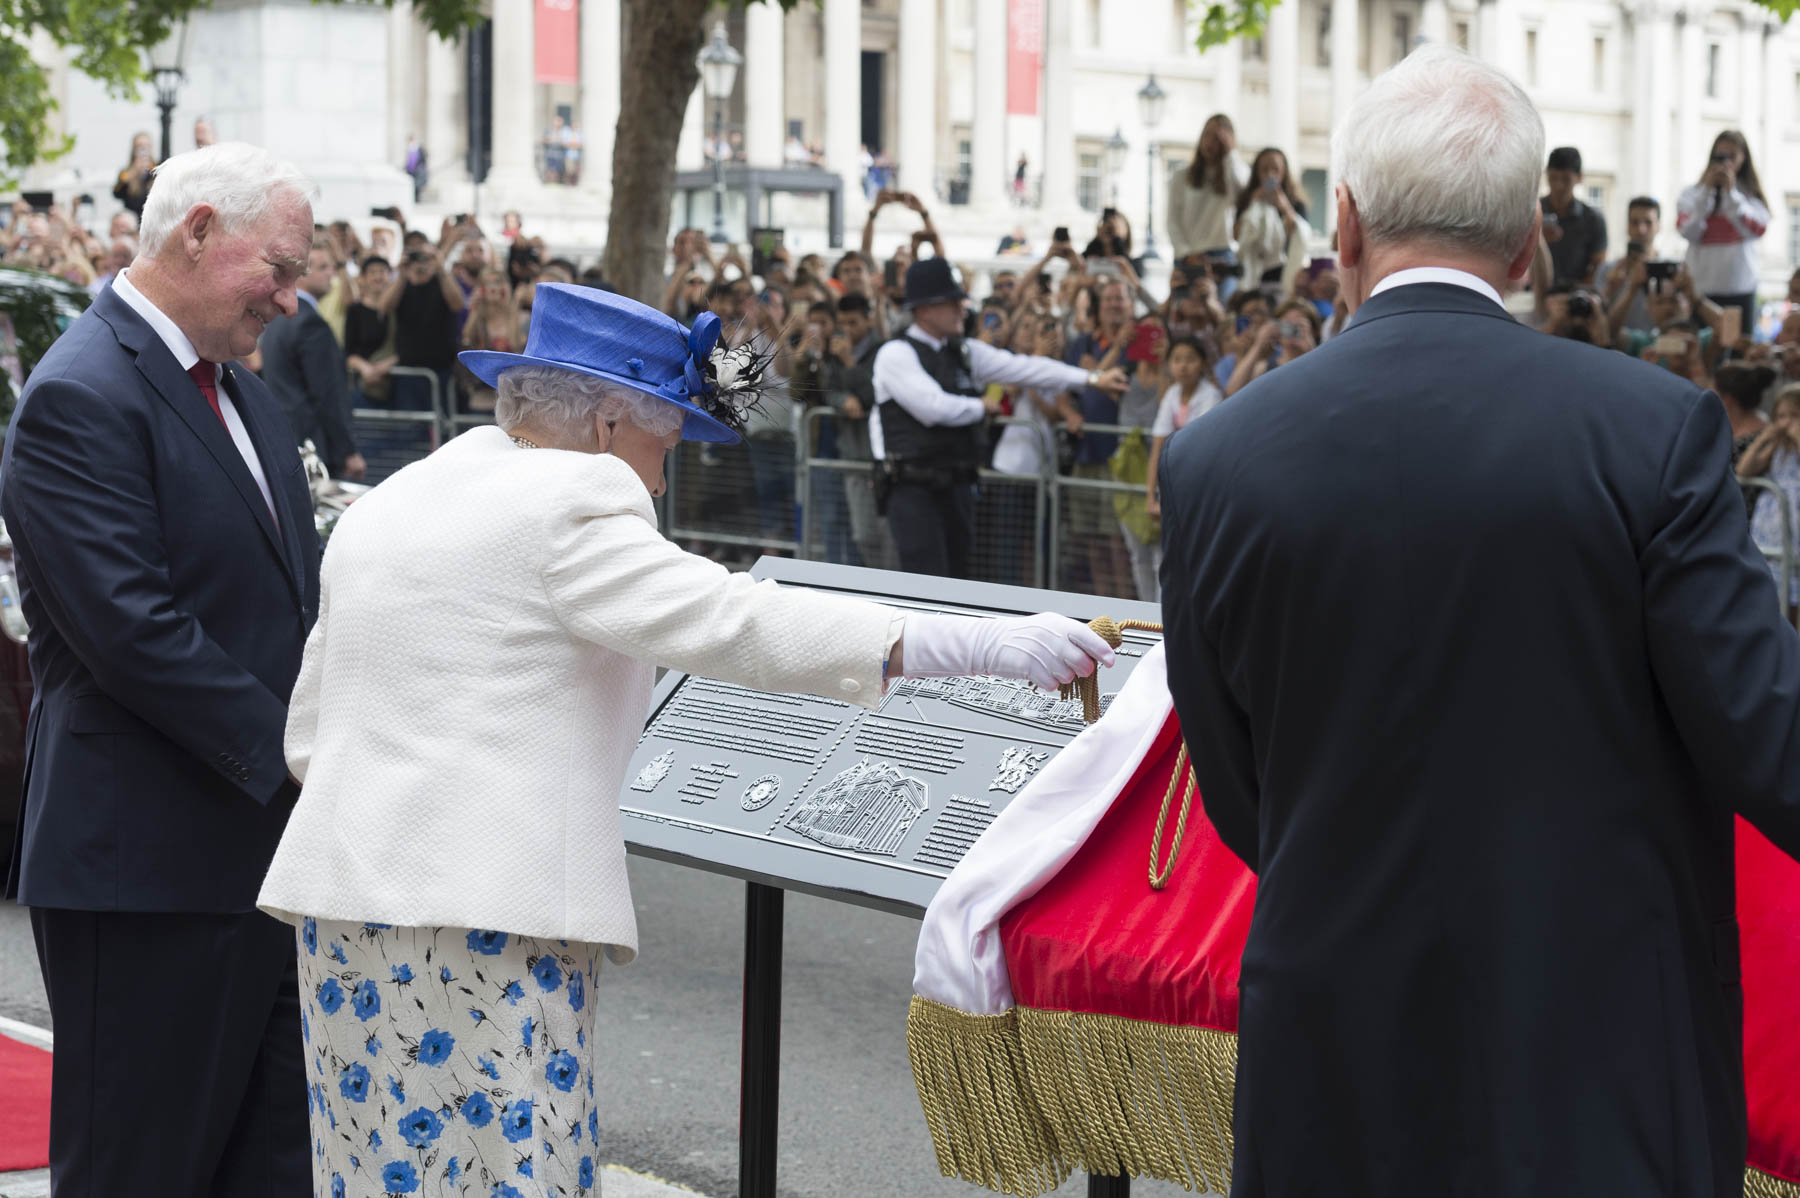 The event concluded with The Queen's unveiling of a new Jubilee Walkway Panel outside Canada House.